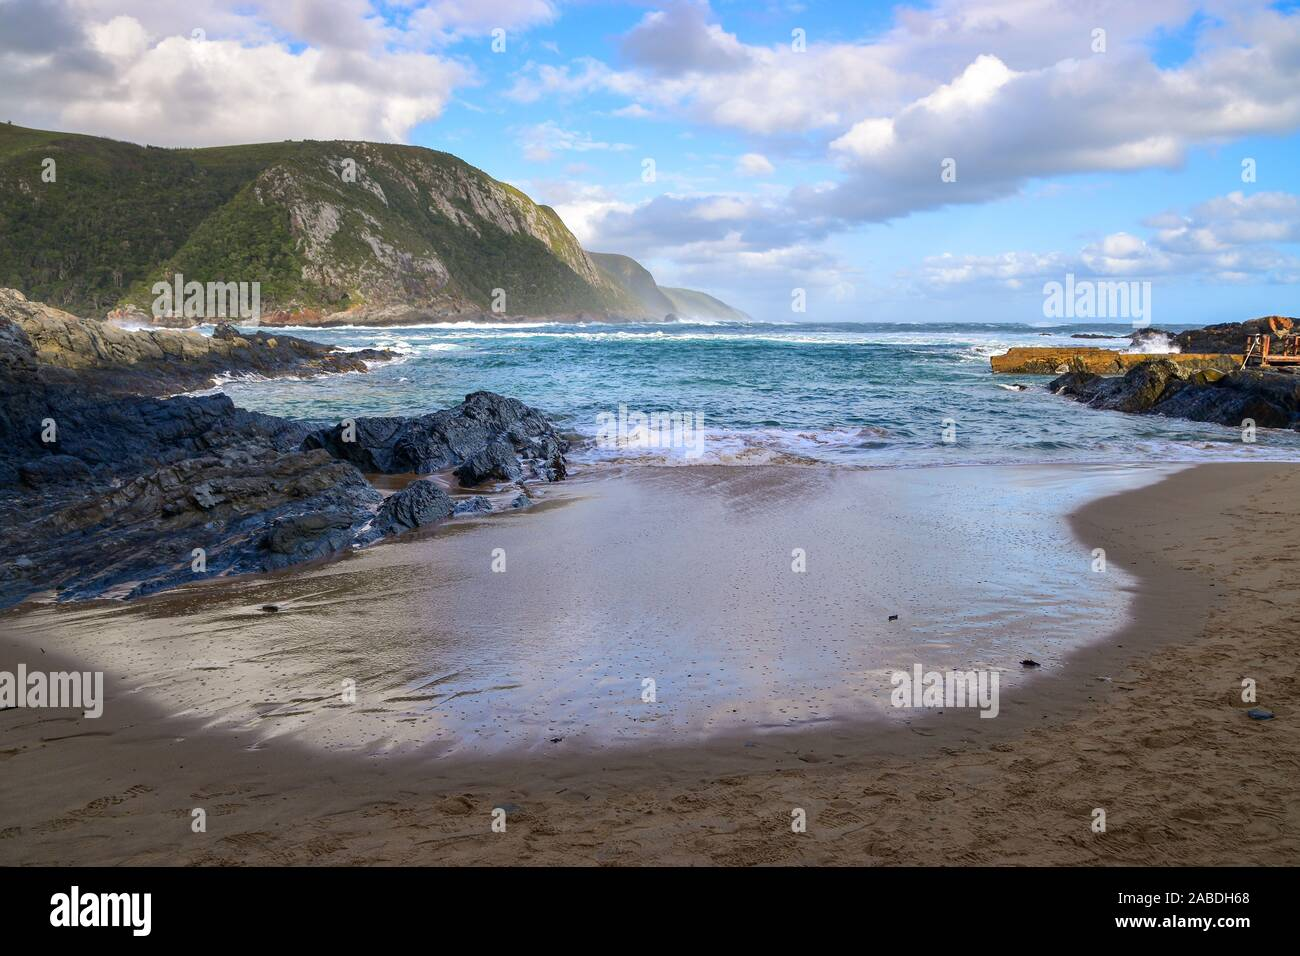 Seascape with sandy beach, blue ocean and green mountains, Tsitsikamma National Park, Garden Route, Eastern Cape, South Africa Stock Photo